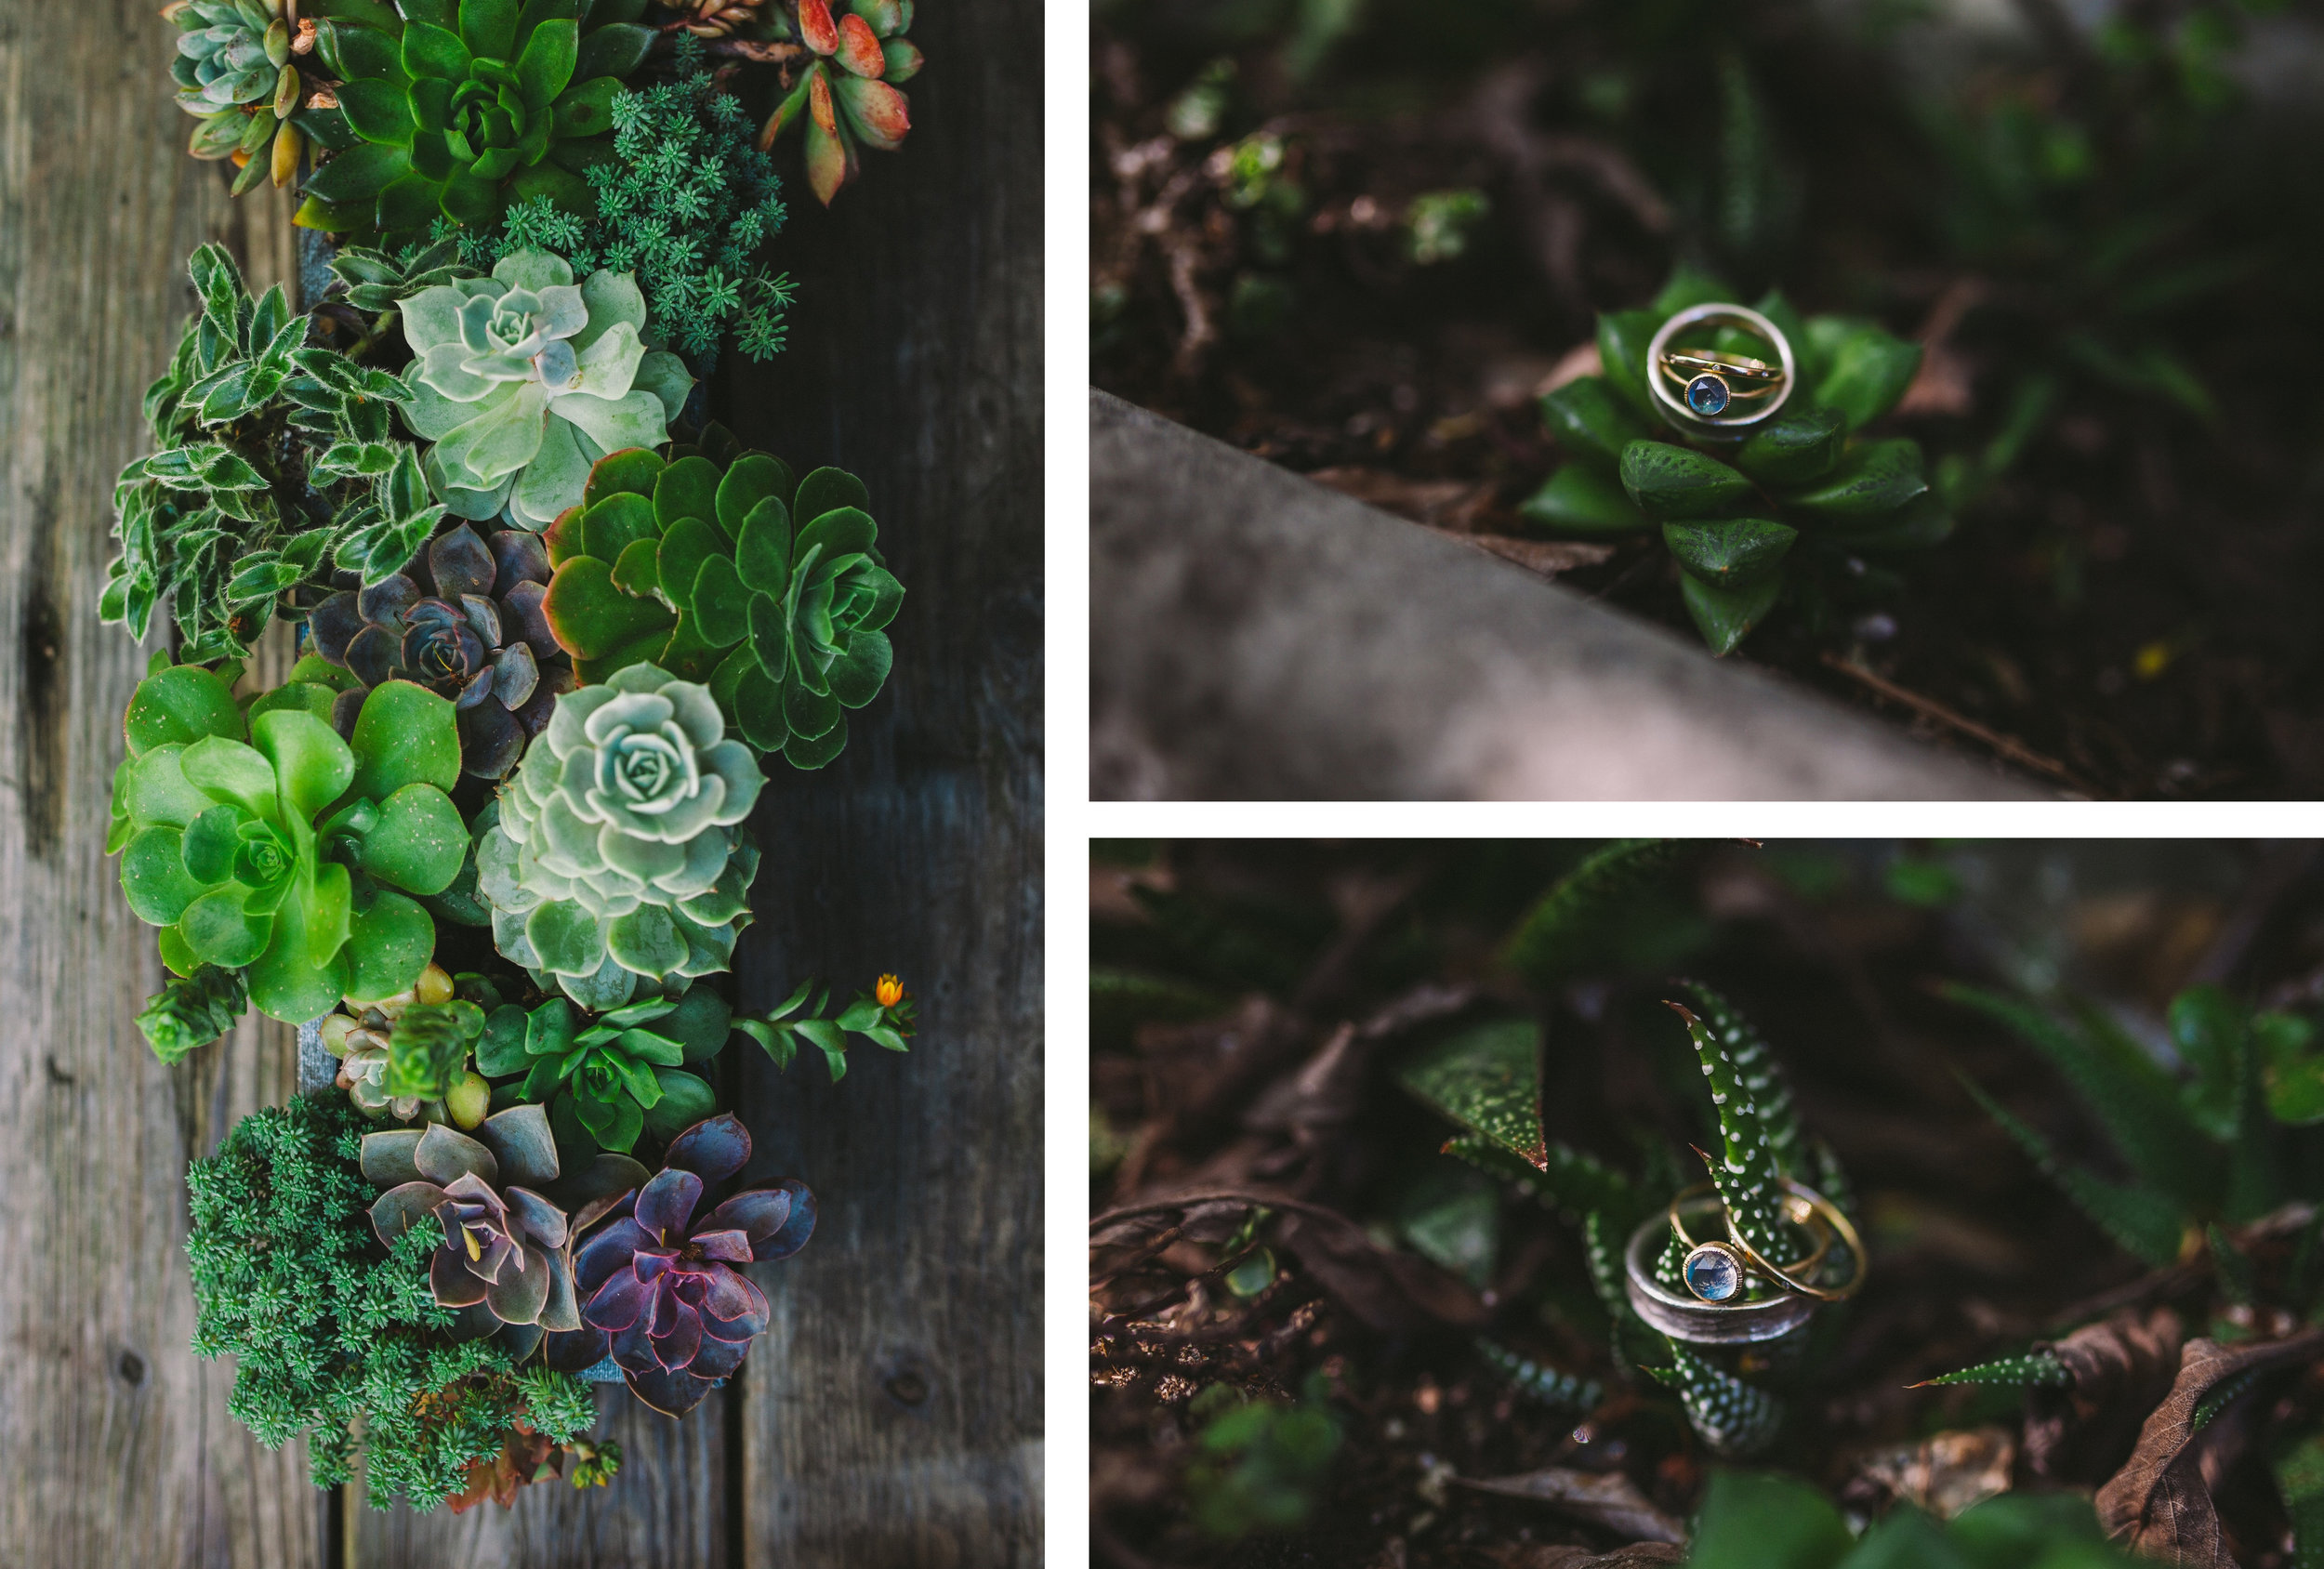 Moonstone Engagement Ring and Wedding Bands in Succulent Plants